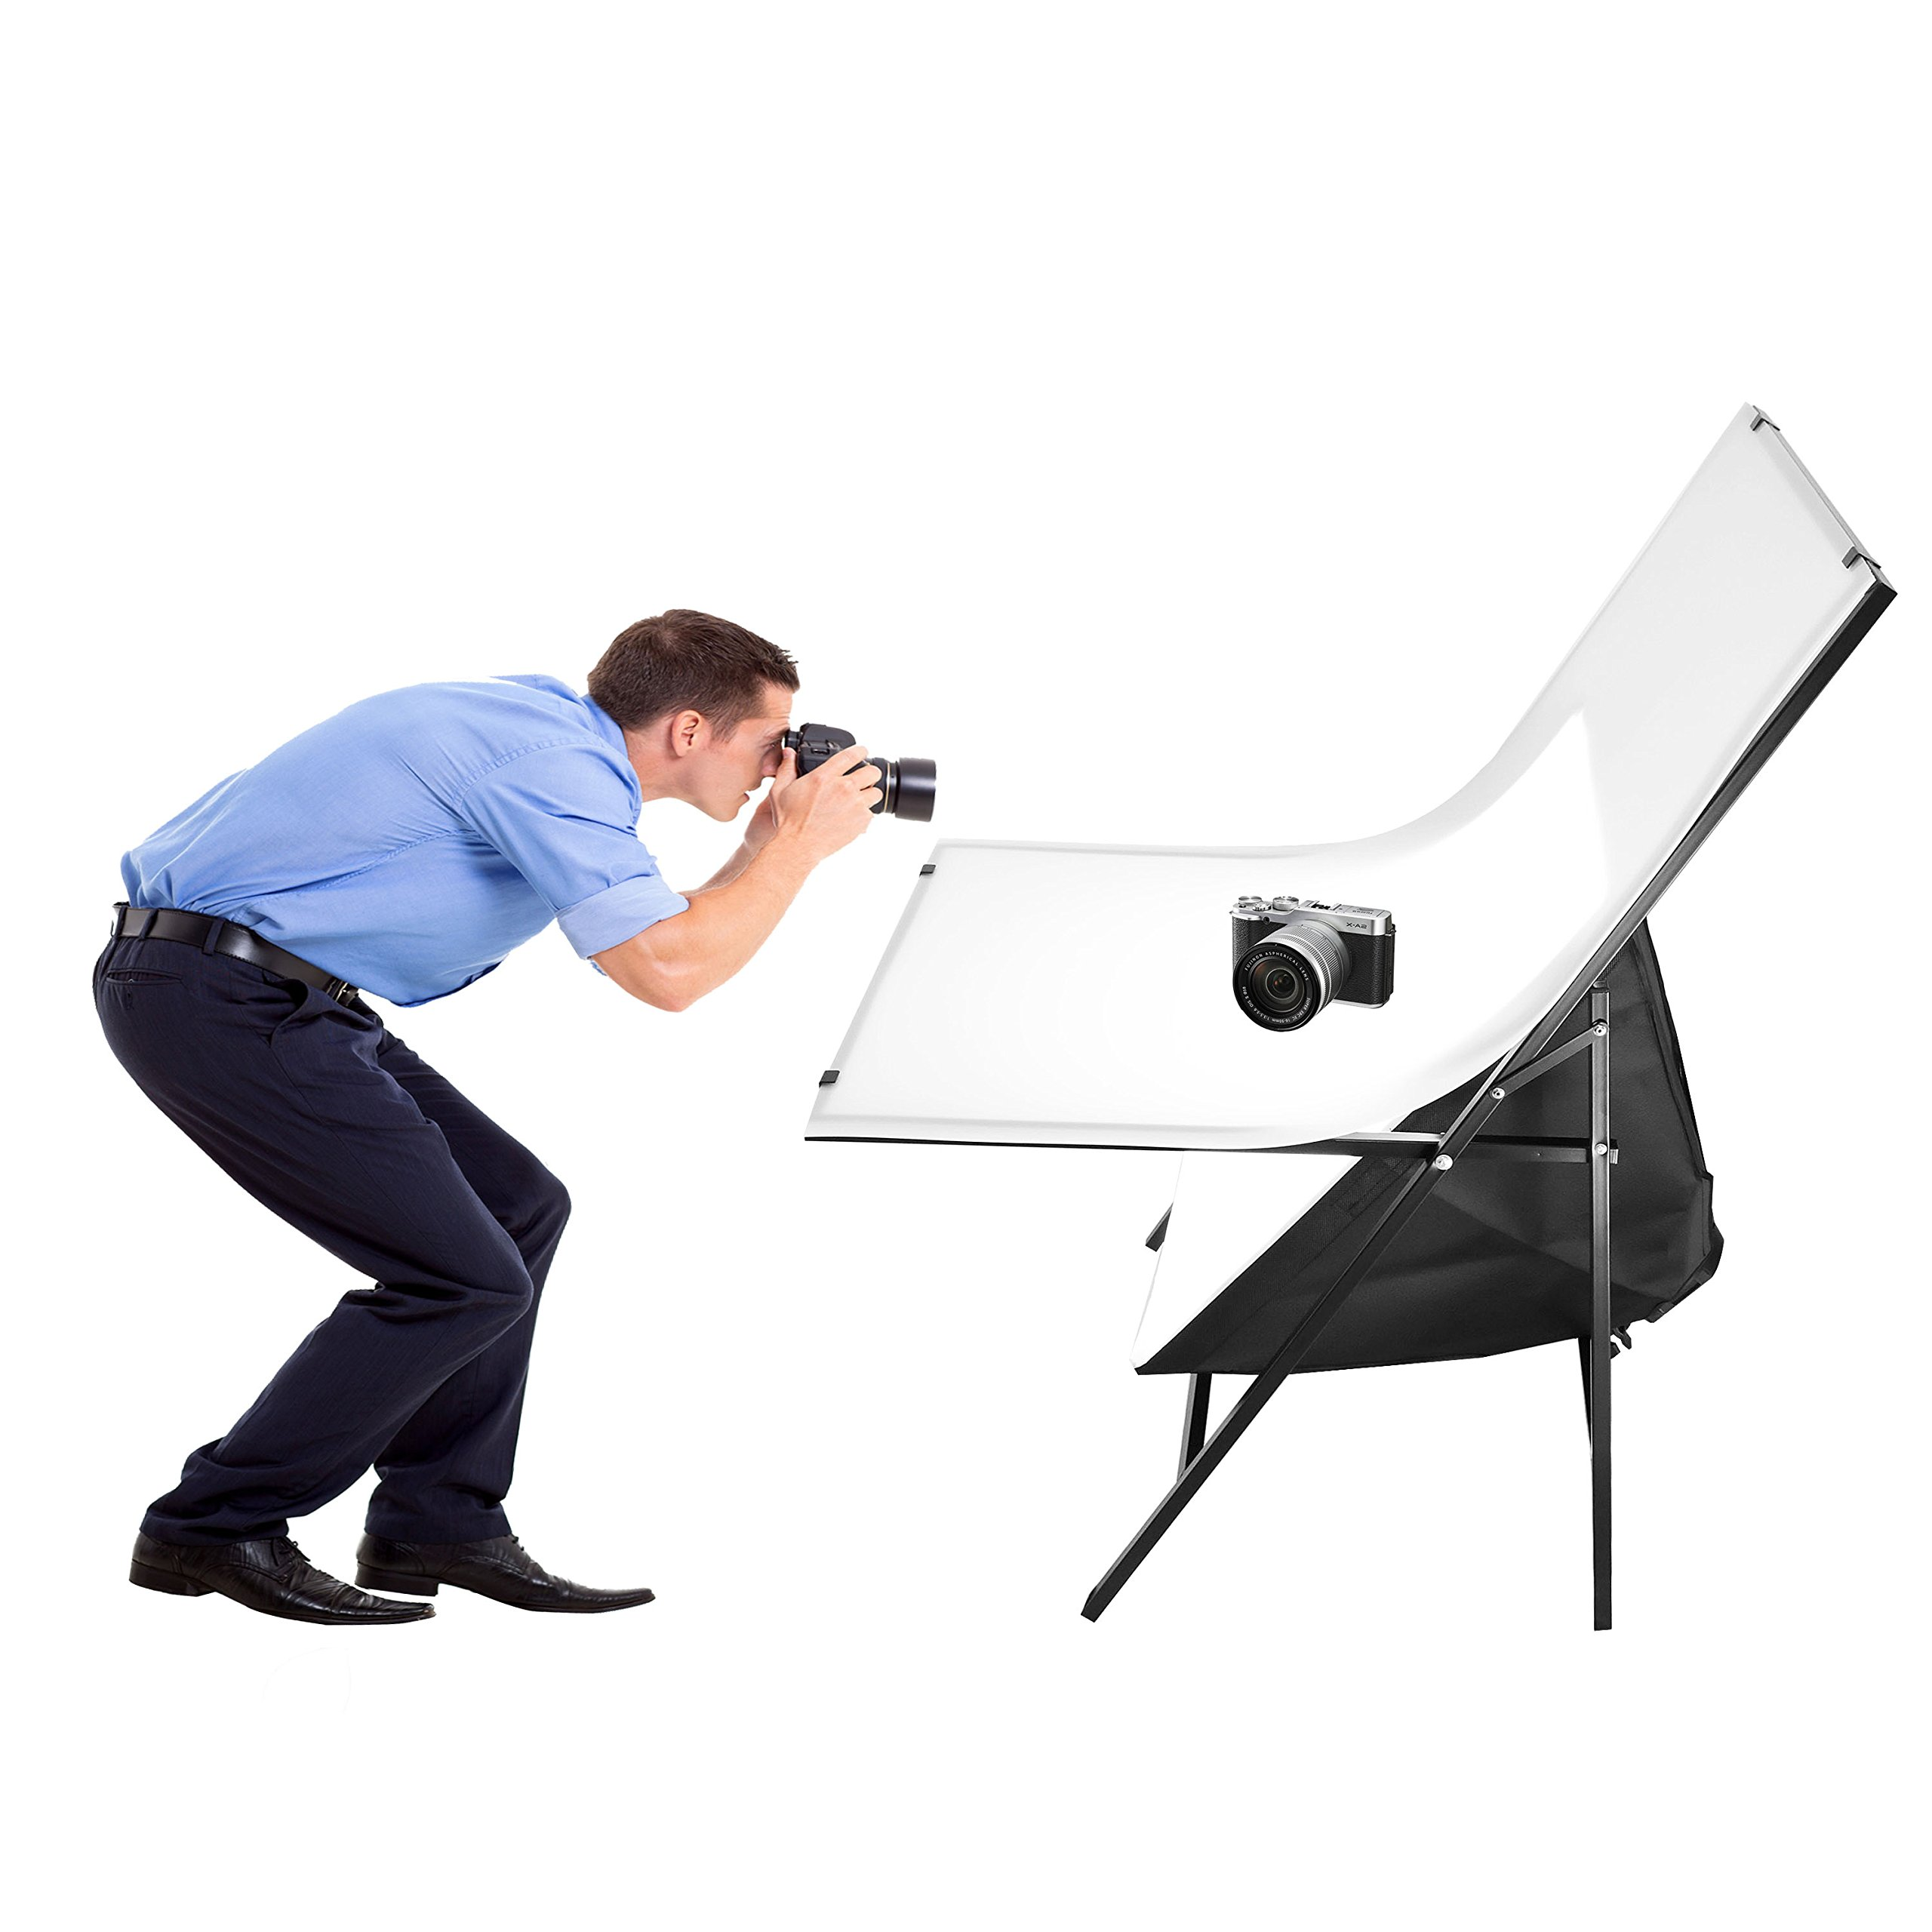 Foto&Tech Portable Non-Reflective Still Life Shooting Metal Frame Foldable Table with 58cm x 98cm Pure White Plexiglass Panel Cover Photo Studio Bench Easy Set Up without tools by Foto&Tech